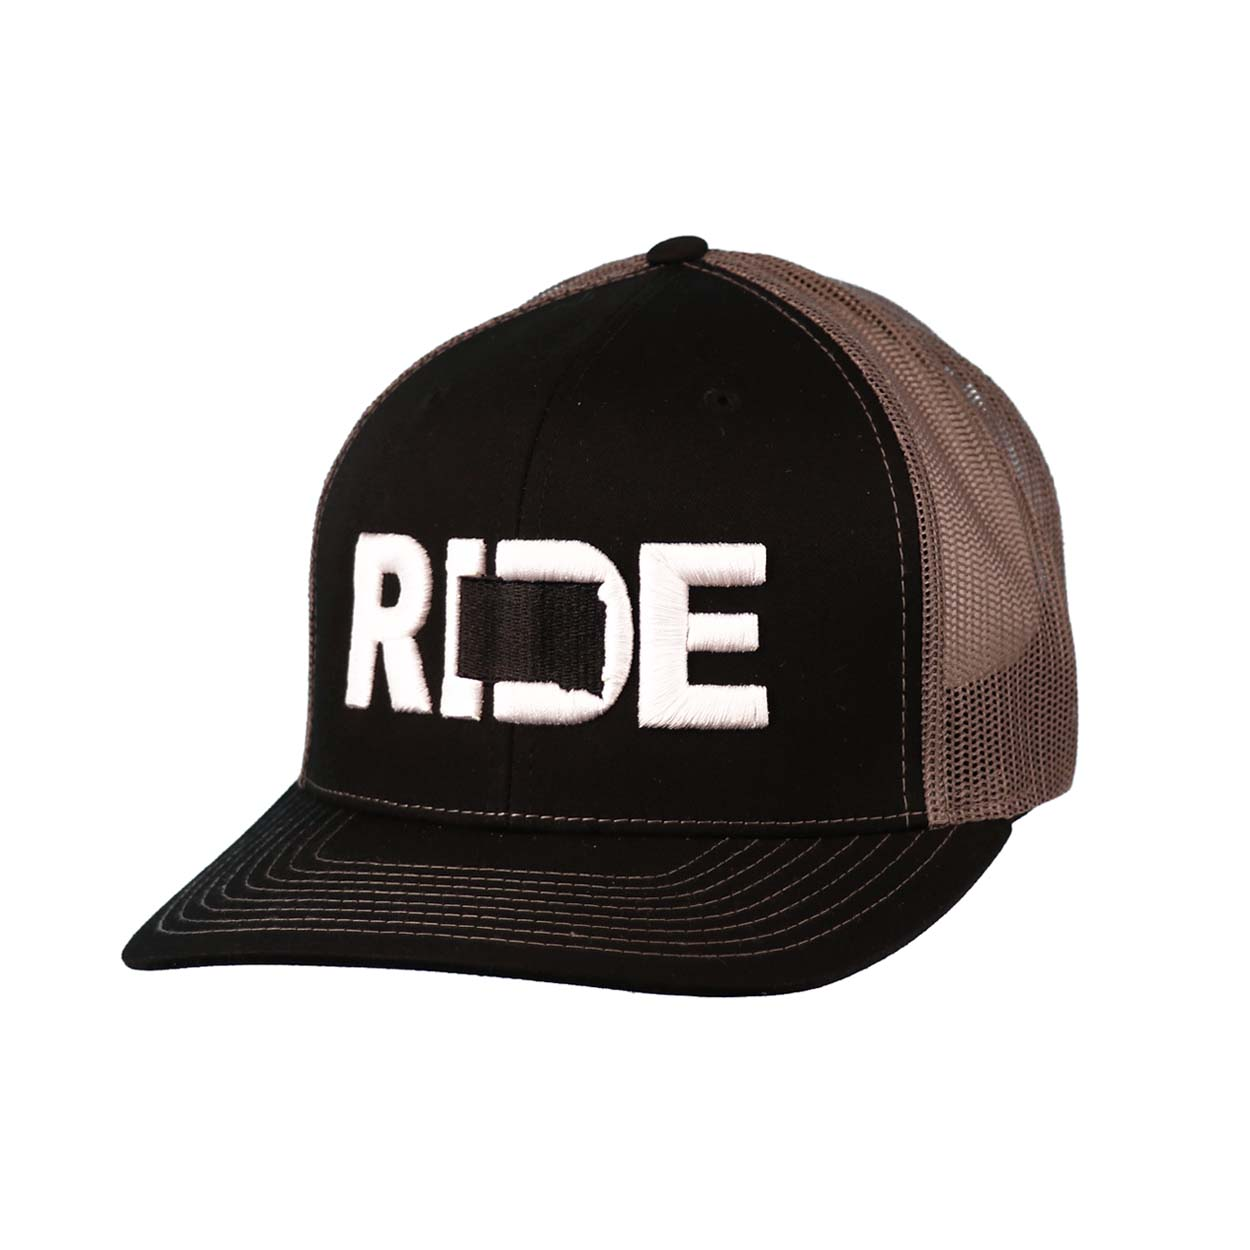 Ride South Dakota Classic Embroidered Snapback Trucker Hat Black/White